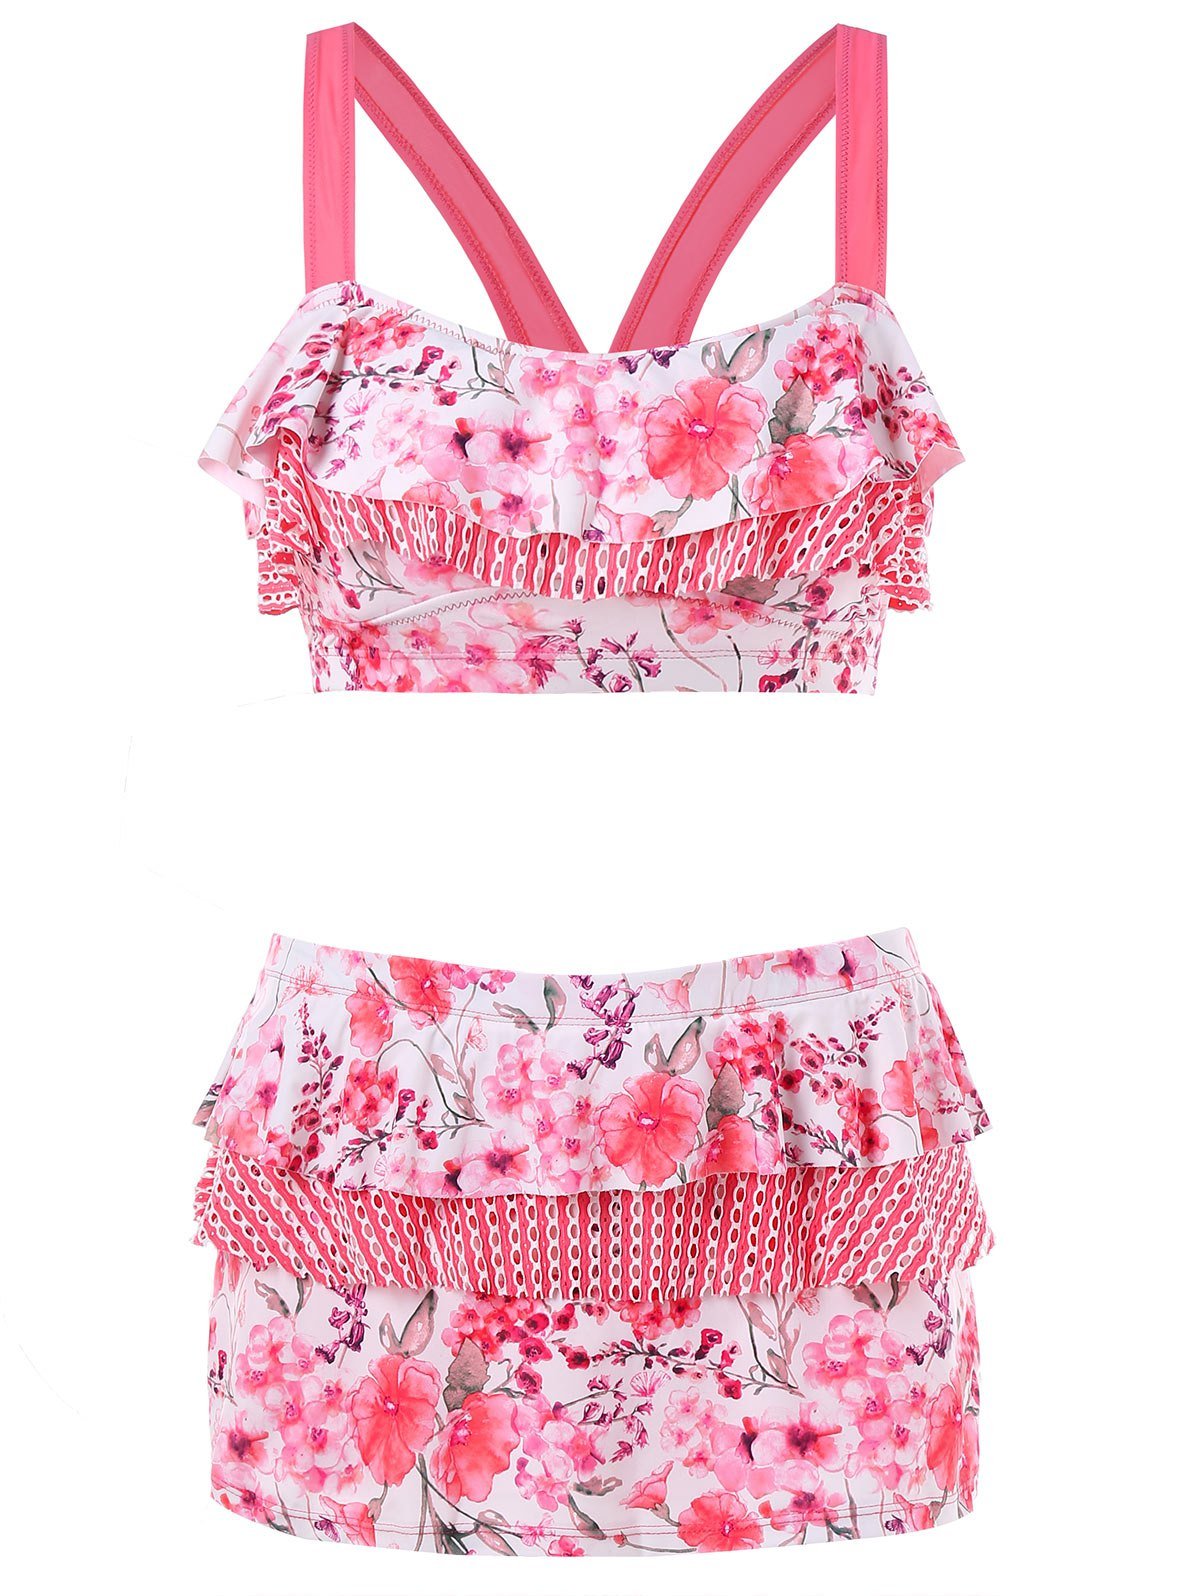 Blossom Printed Lace Panel Bikini - FLAMINGO PINK XL